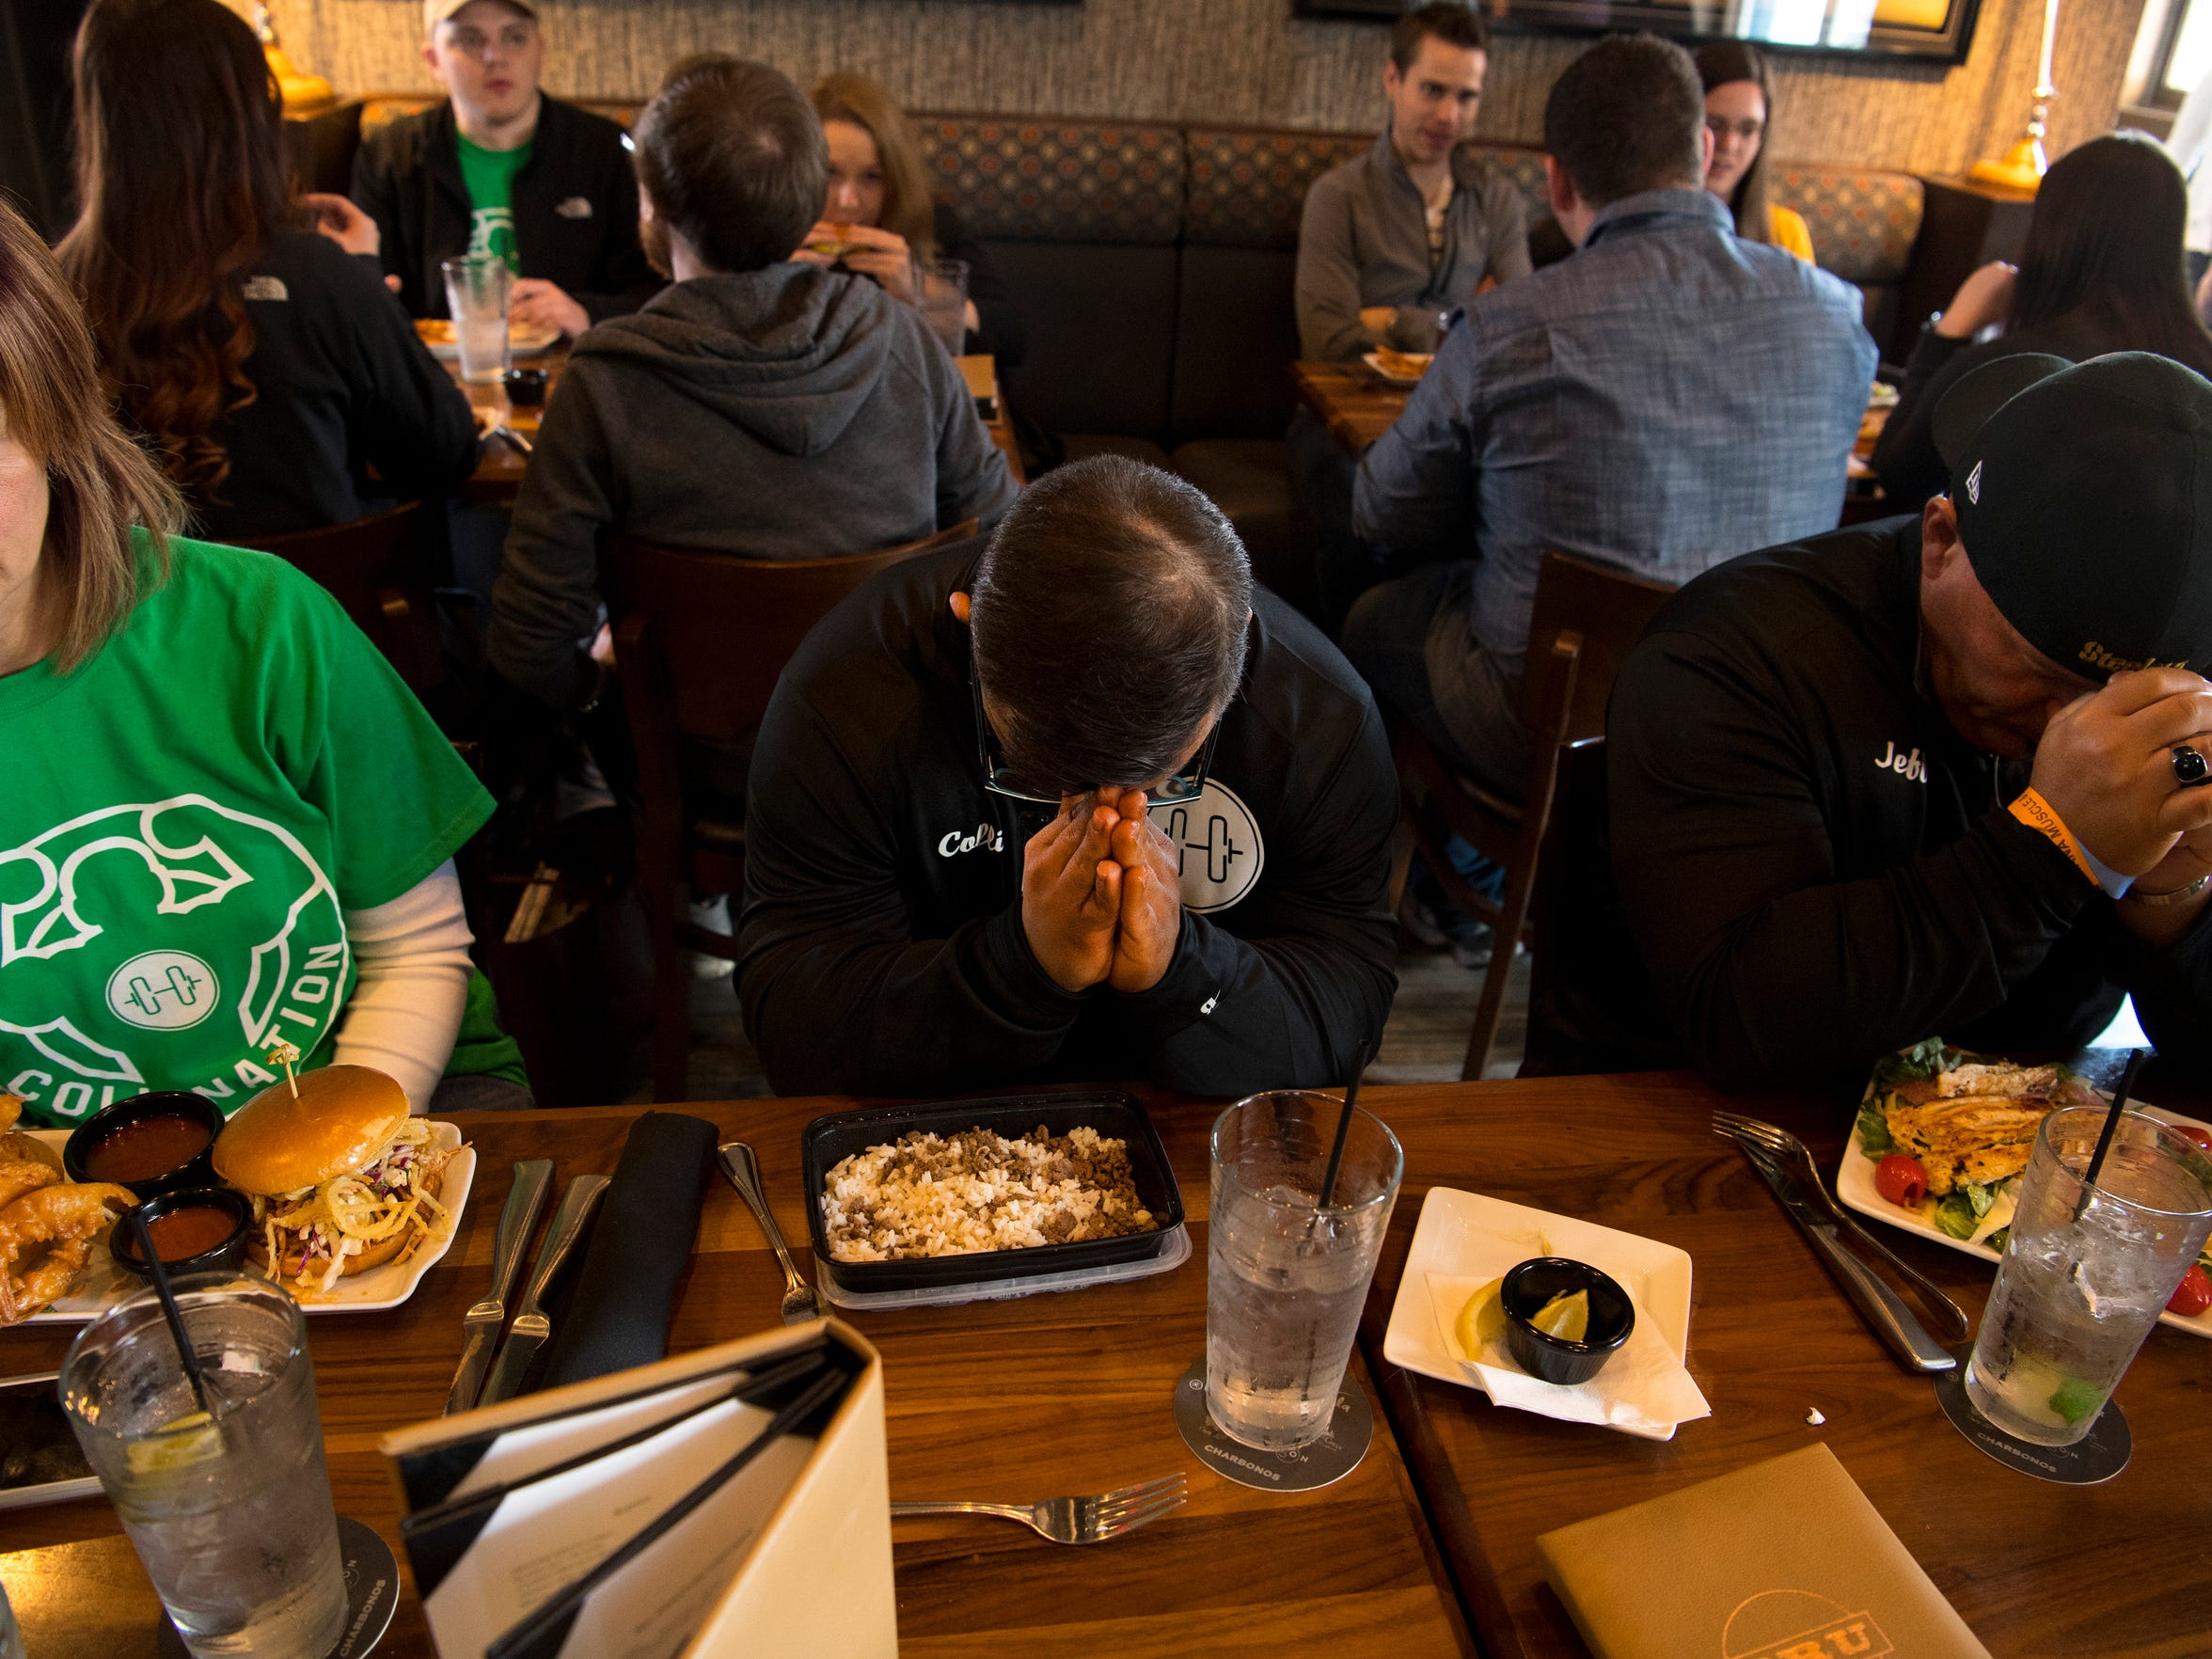 A pre-meal prayer at Bru Burger in Evansville kicks